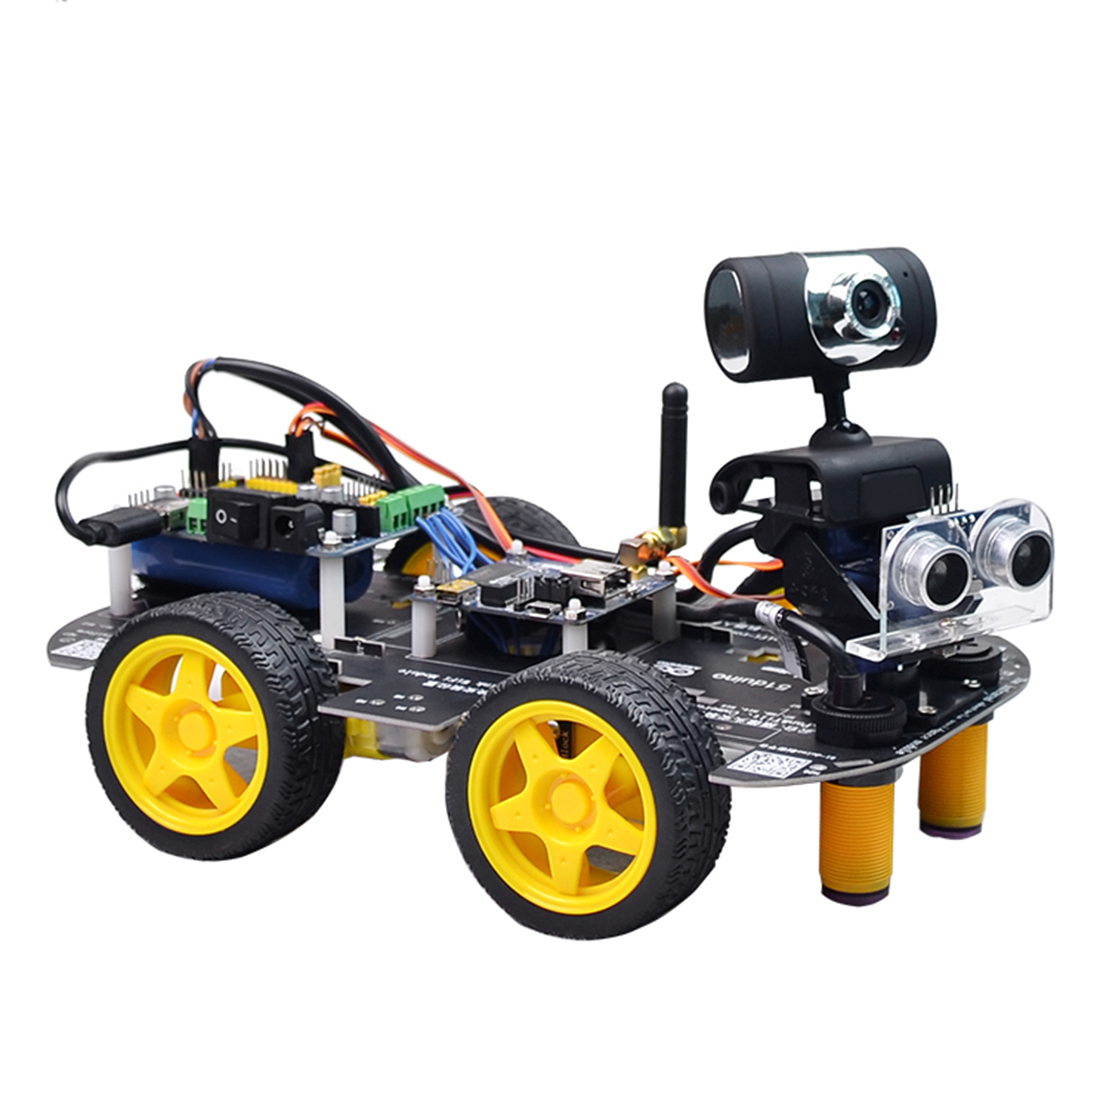 DIY Programmable Robot Wifi Steam Car With Graphic XR BLOCK Linux For Raspberry Pi 4(2G)(Line Patrol Obstacle Avoide Version)